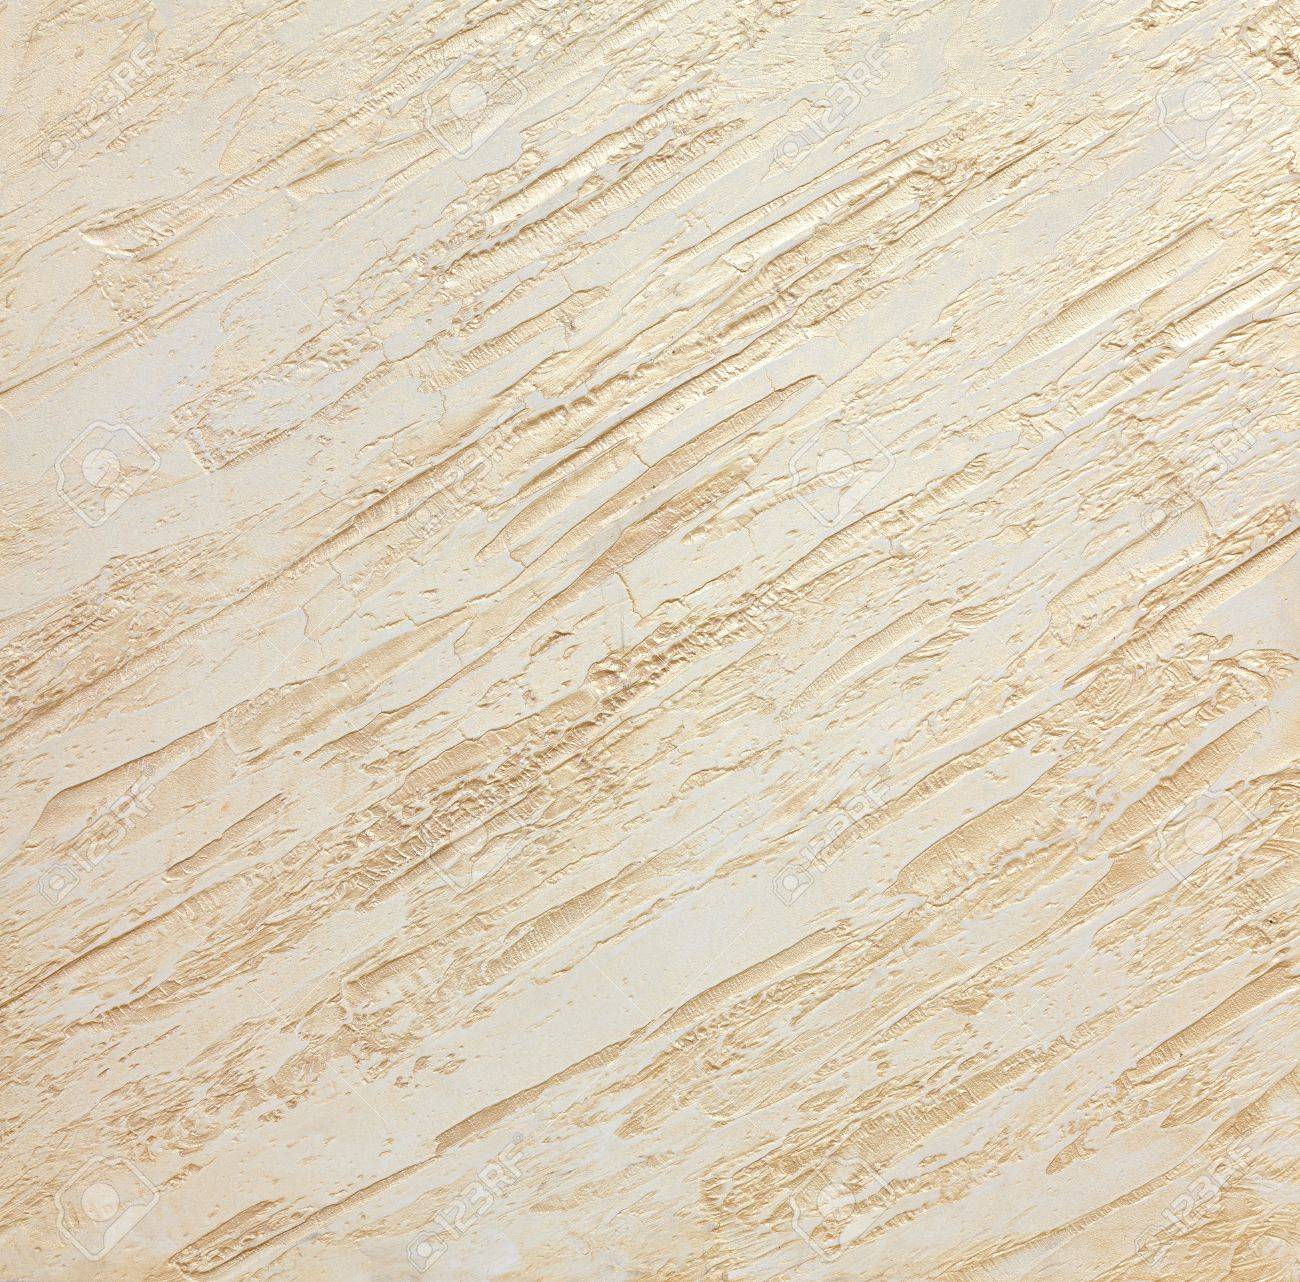 Wall paint texture - Large Texture Of Wall Painted Beige With Gloss Stock Photo 13484413